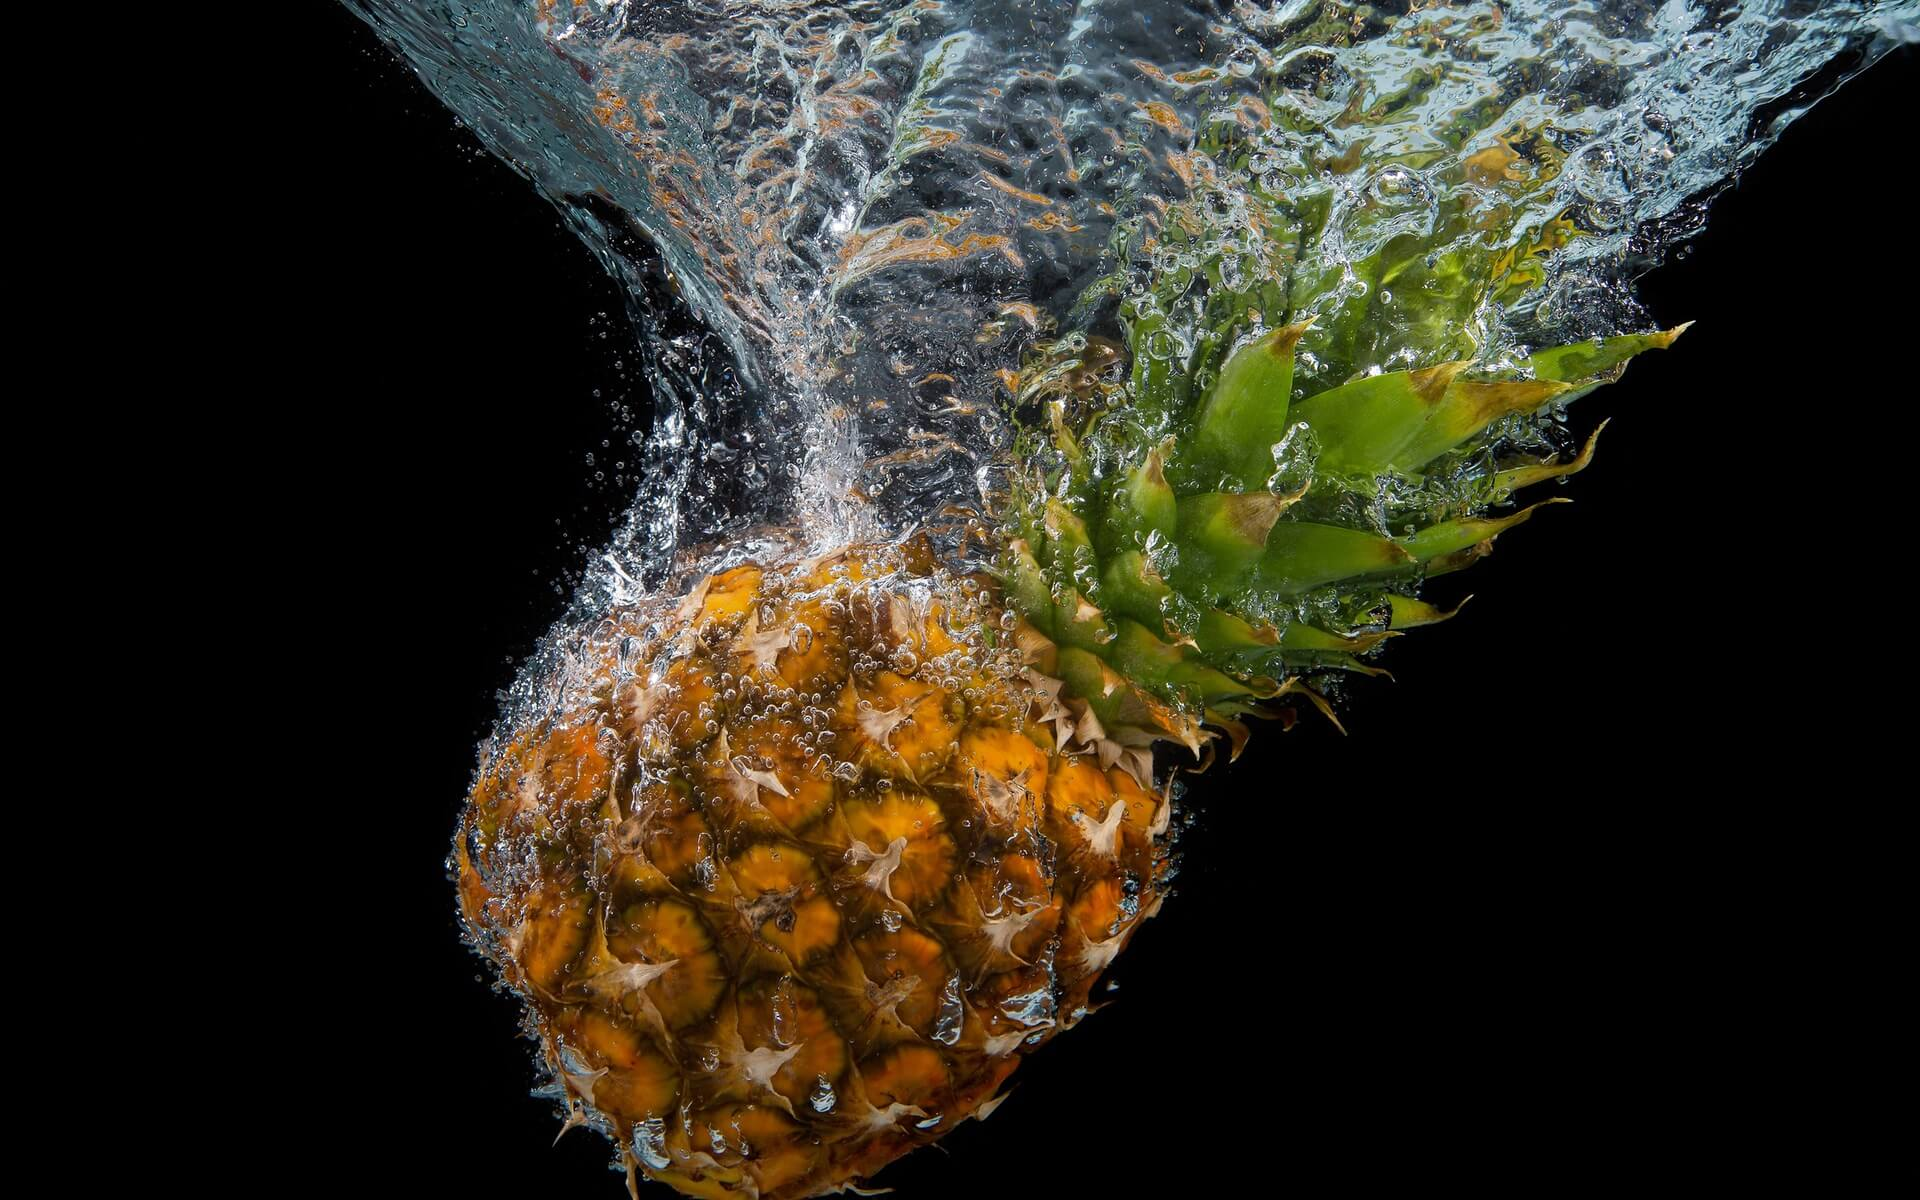 pineapple underwater wallpaper background